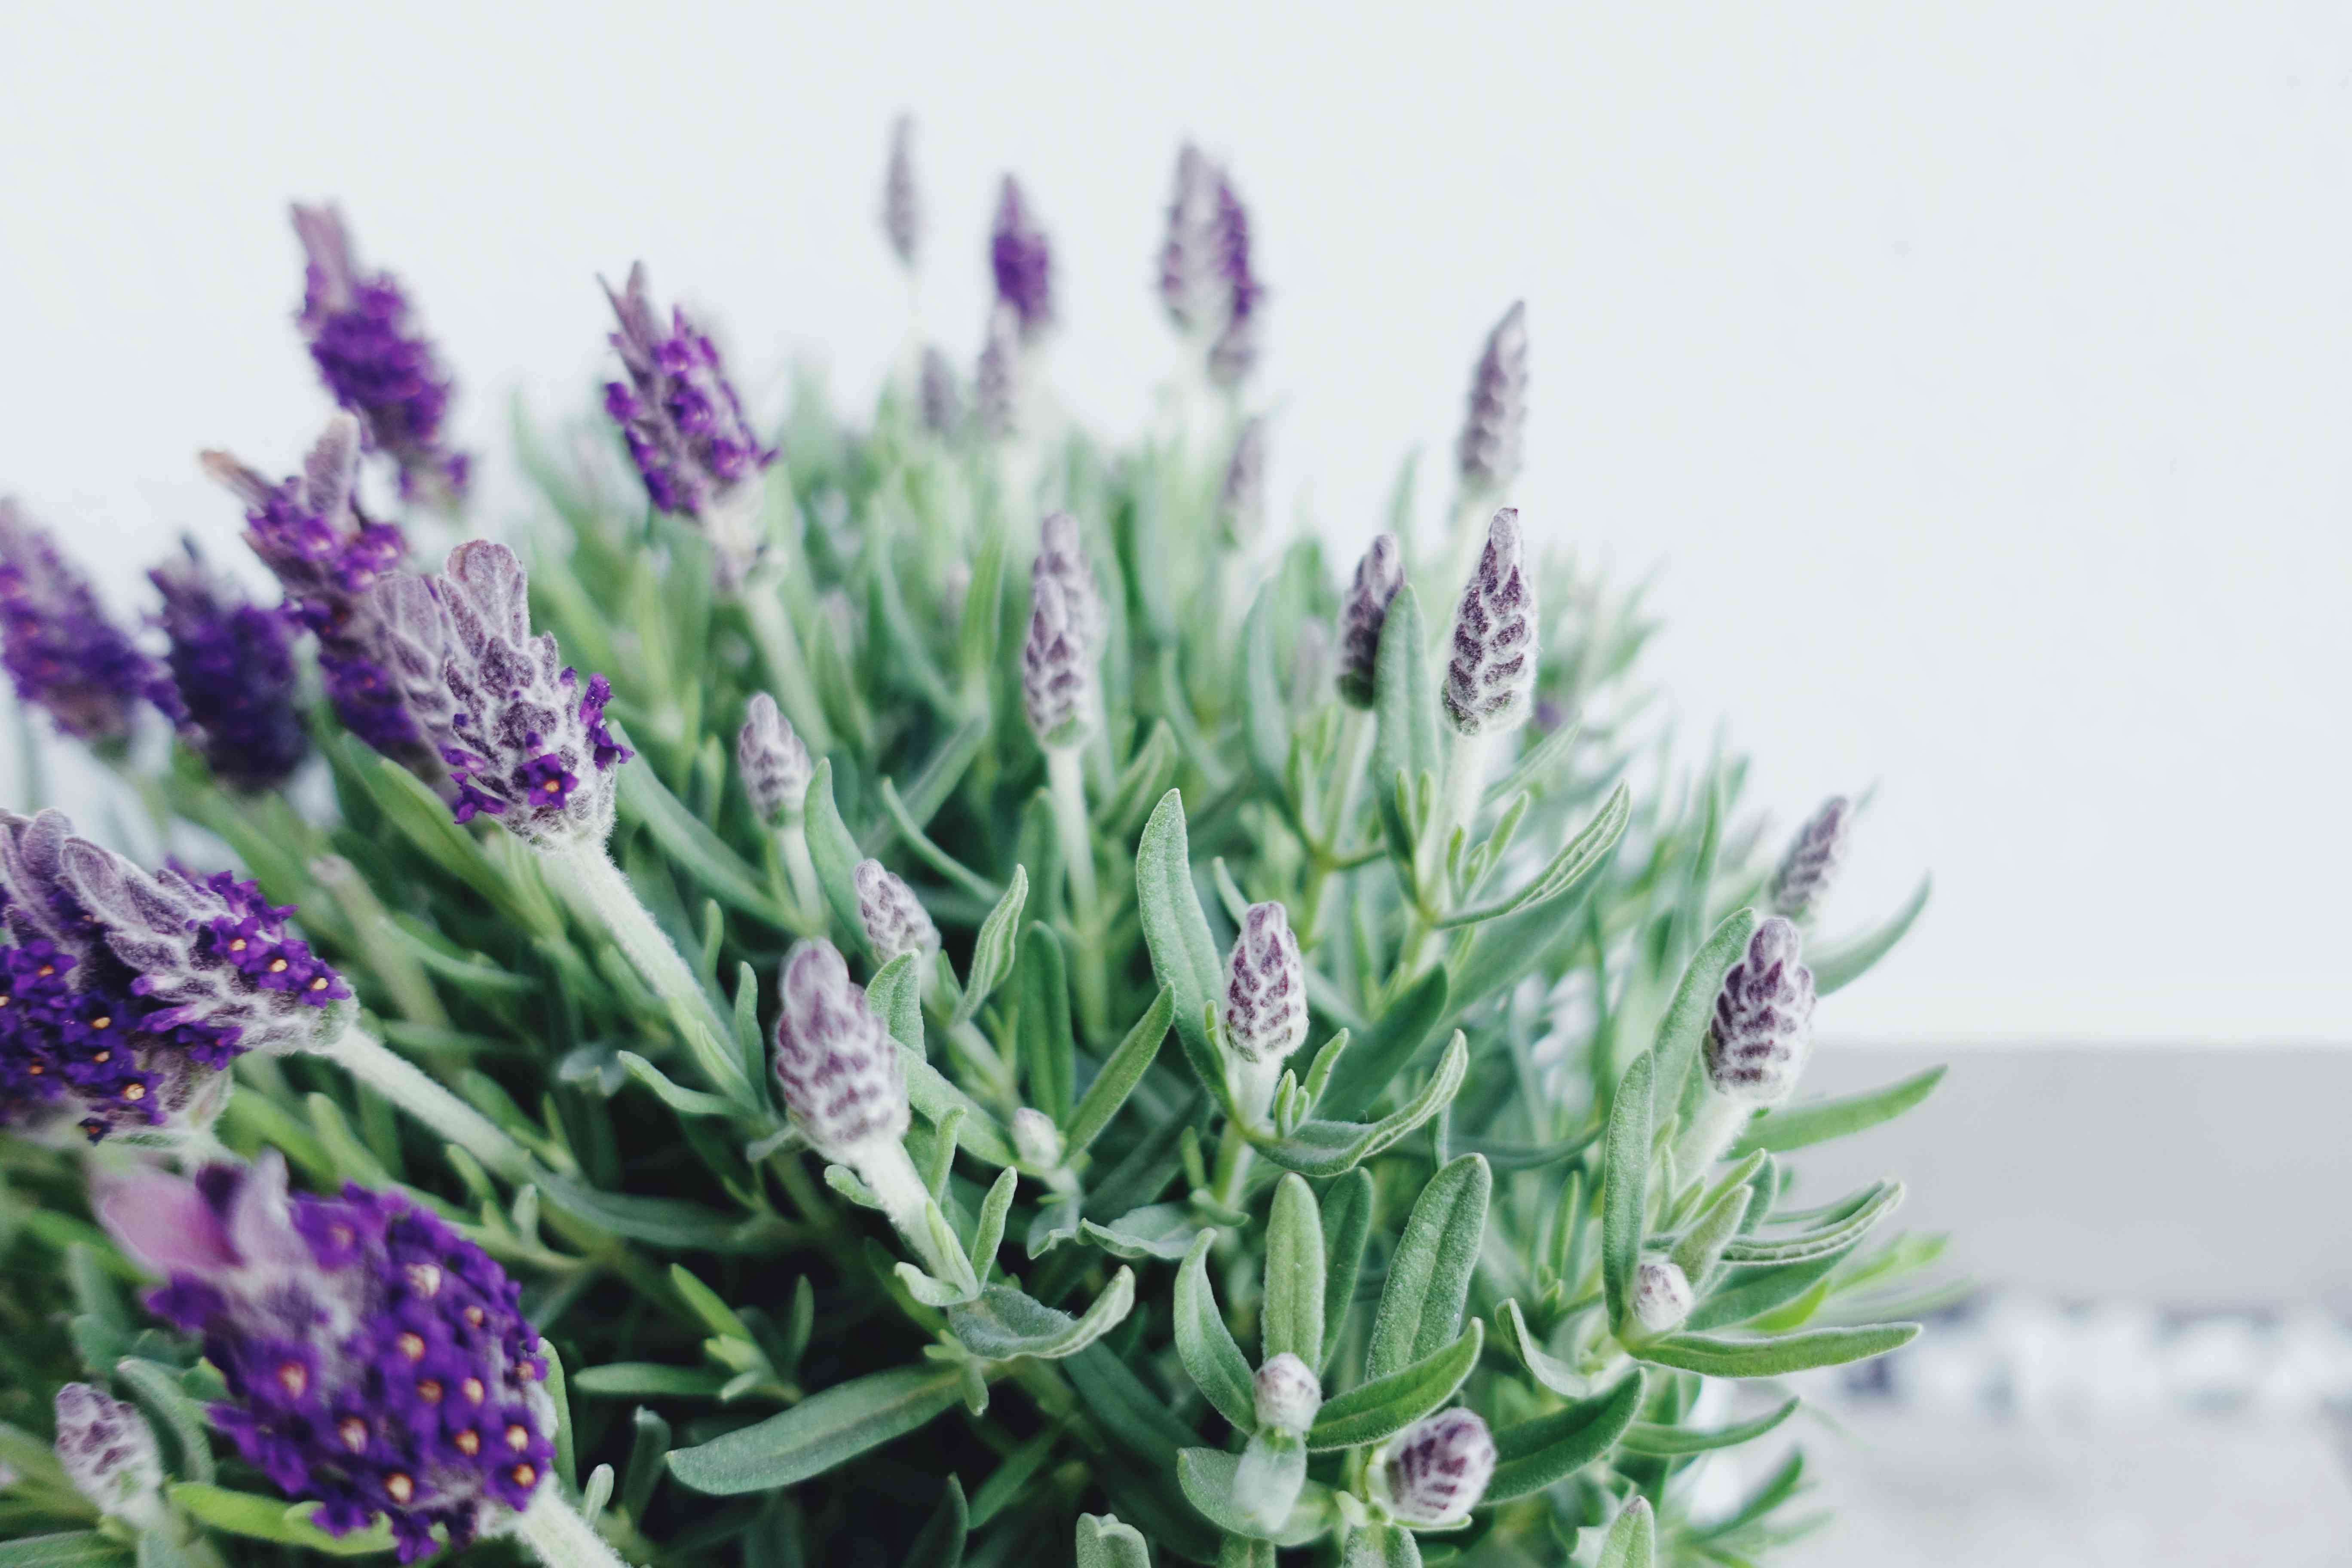 Close-up View Of Lavender Blooming In Pot Against White Wall